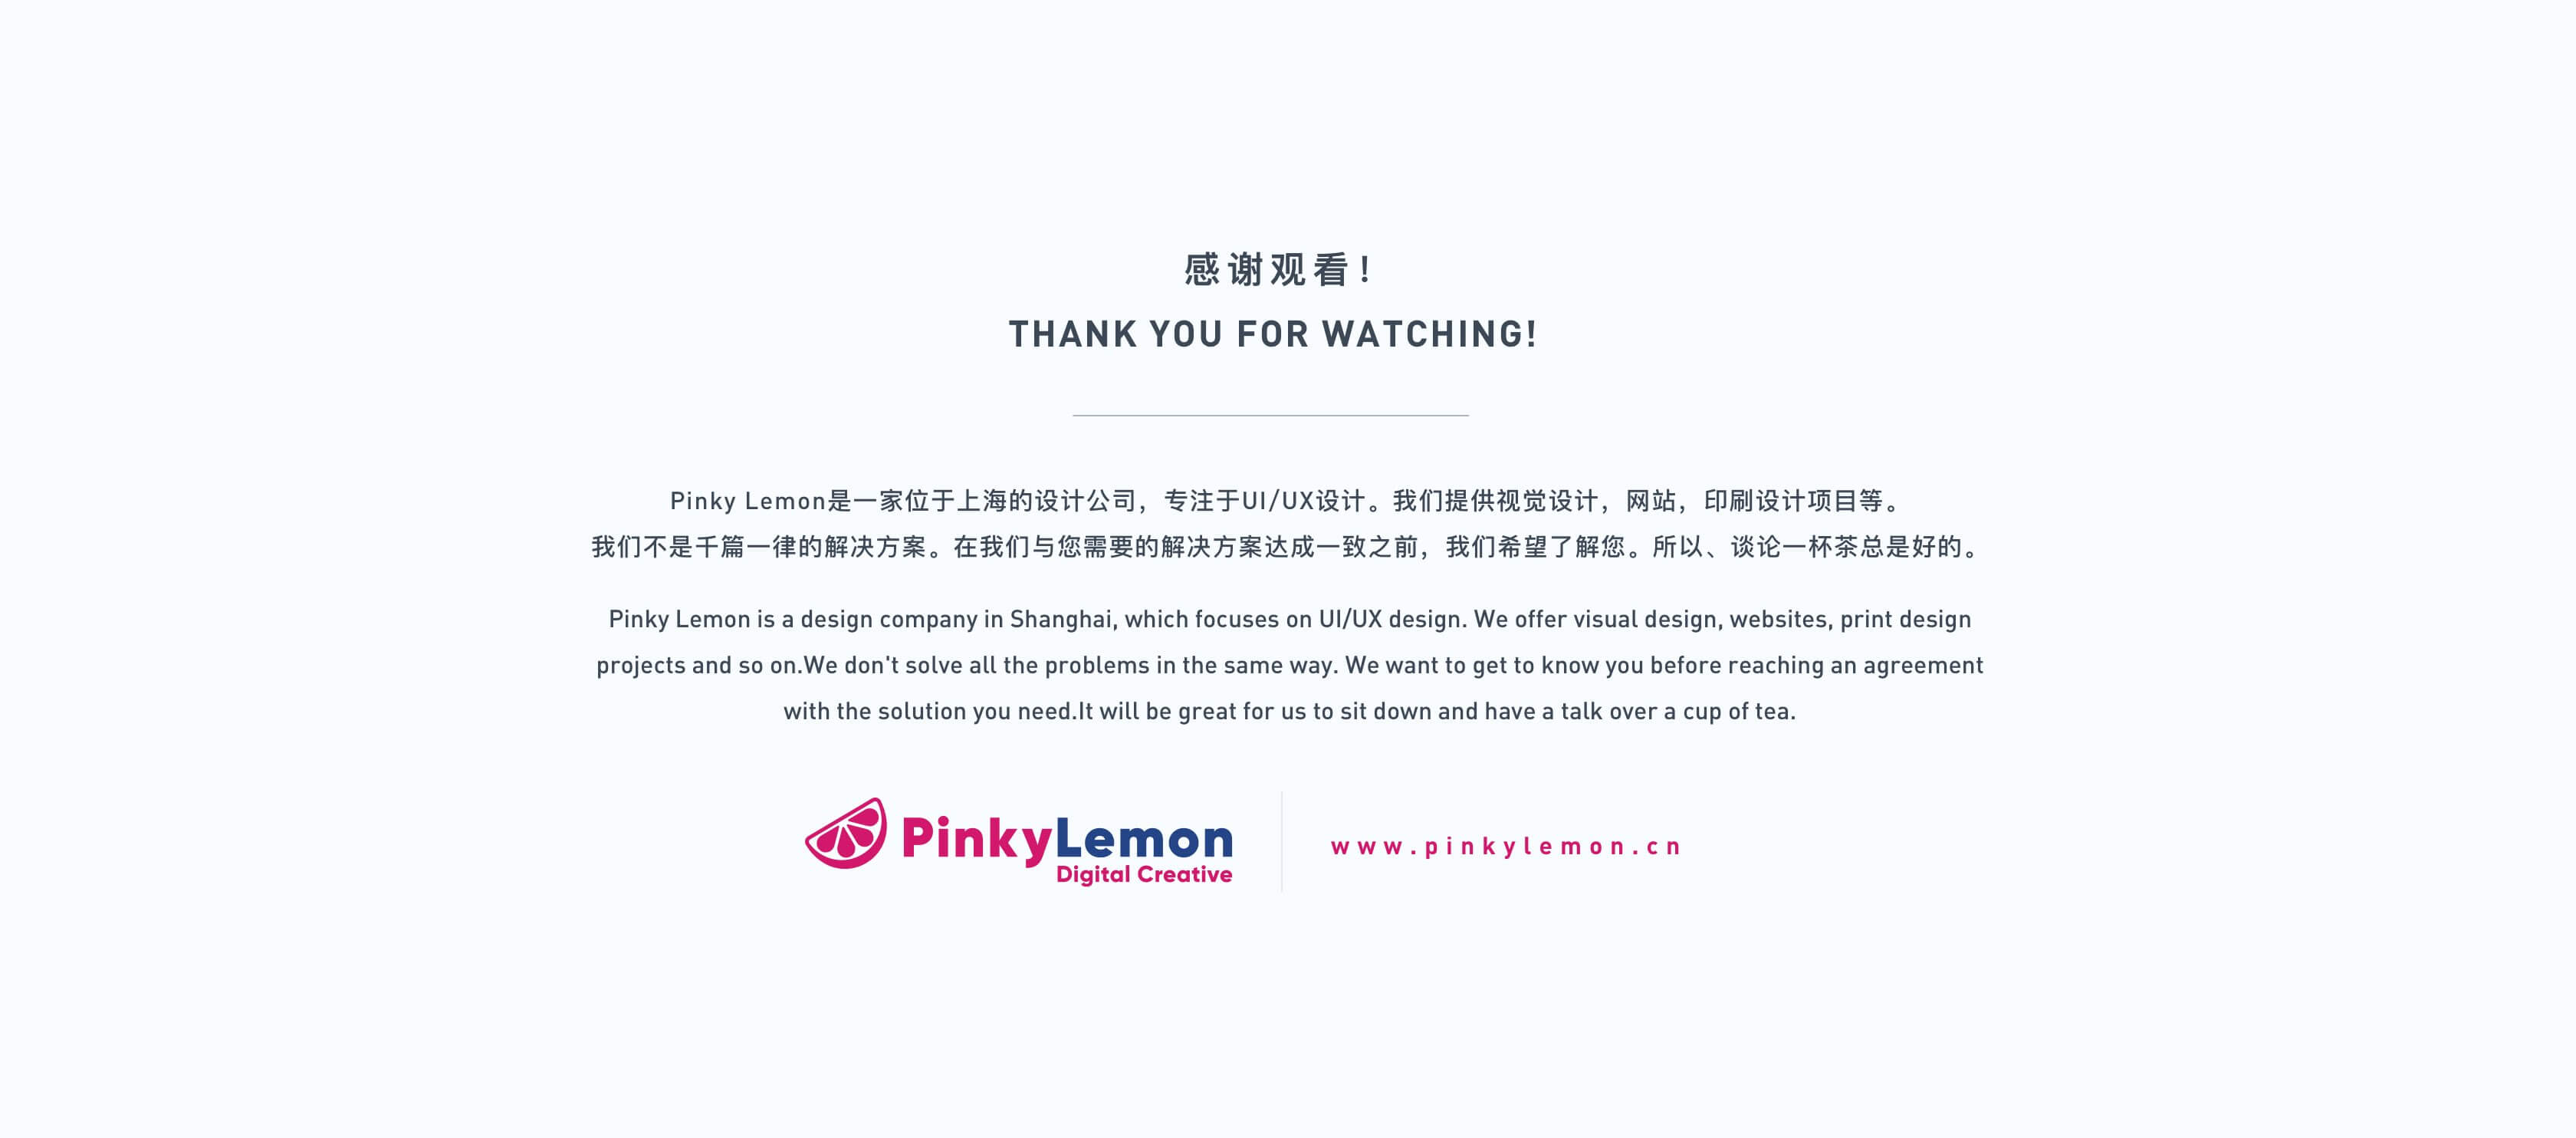 感谢观看! THANK YOU FOR WATCHING! Pinky Lemon是一家位于上海的设计公司,专注于UI/UX设计。我们提供视觉设计,网站,印刷设计项目等。 我们不是千篇一律的解决方案。在我们与您需要的解决方案达成一致之前,我们希望了解您。所以、谈论一杯茶总是好的。 Pinky Lemon is a design company in Shanghai, which focuses on UI/UX design. We offer visual design, websites, print design projects and so on.We don't solve all the problems in the same way. We want to get to know you before reaching an agreement with the solution you need.It will be great for us to sit down and have a talk over a cup of tea.